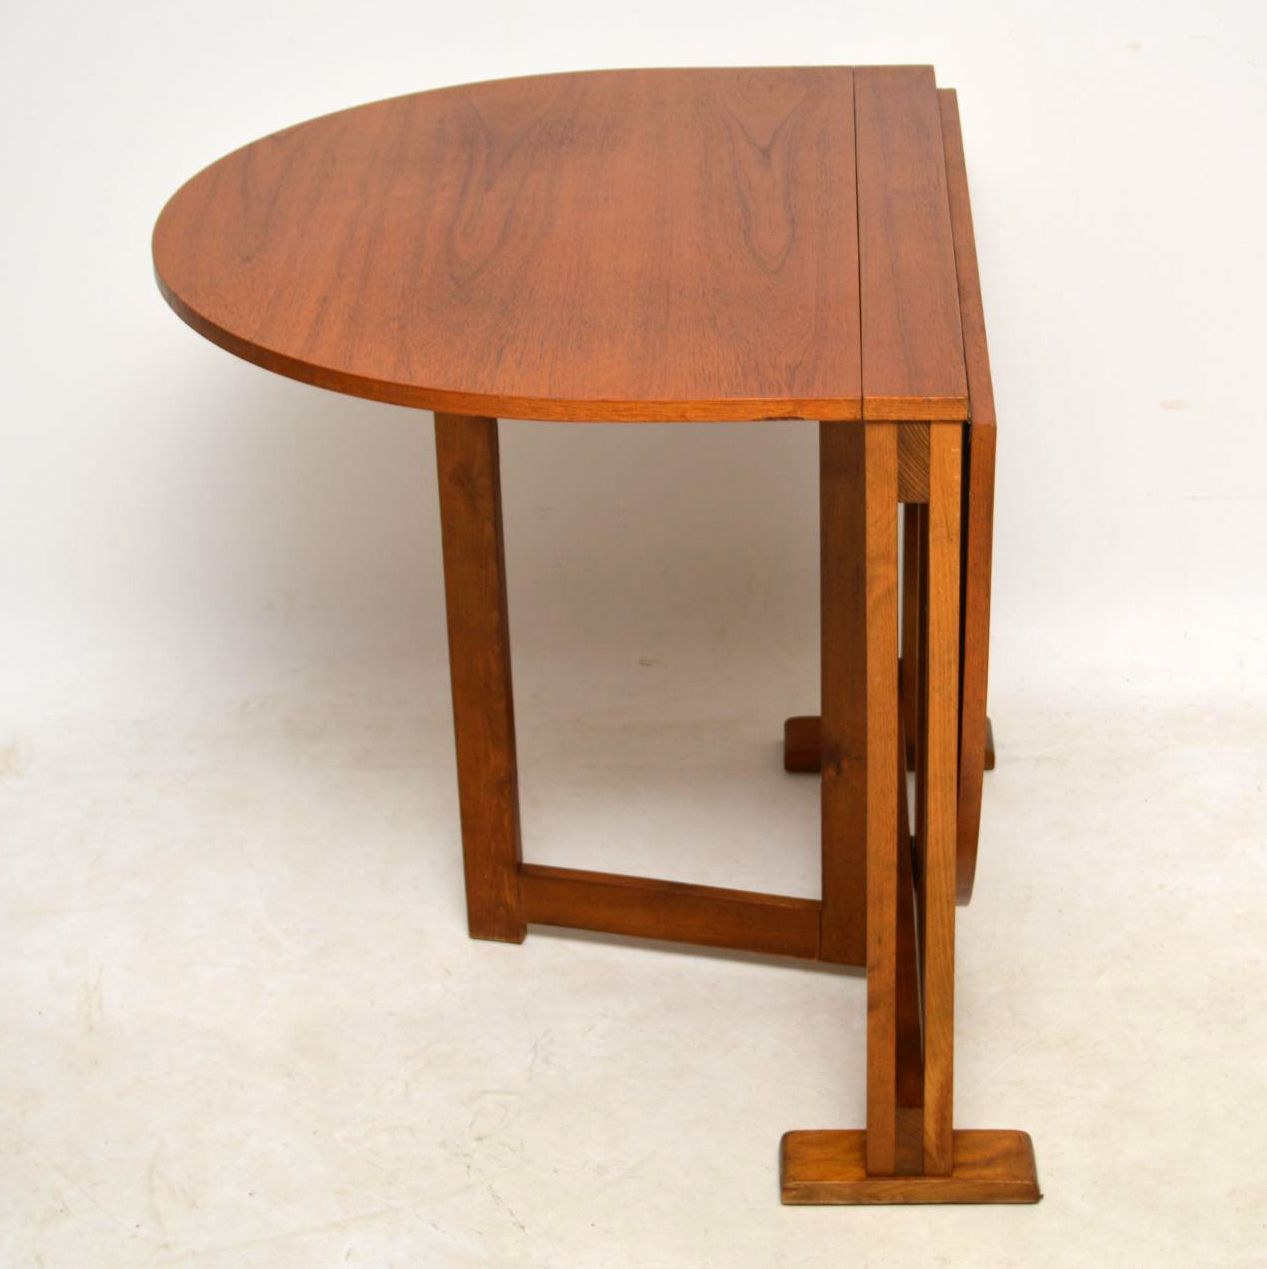 1960 S Teak Vintage Drop Leaf Dining Table Retrospective